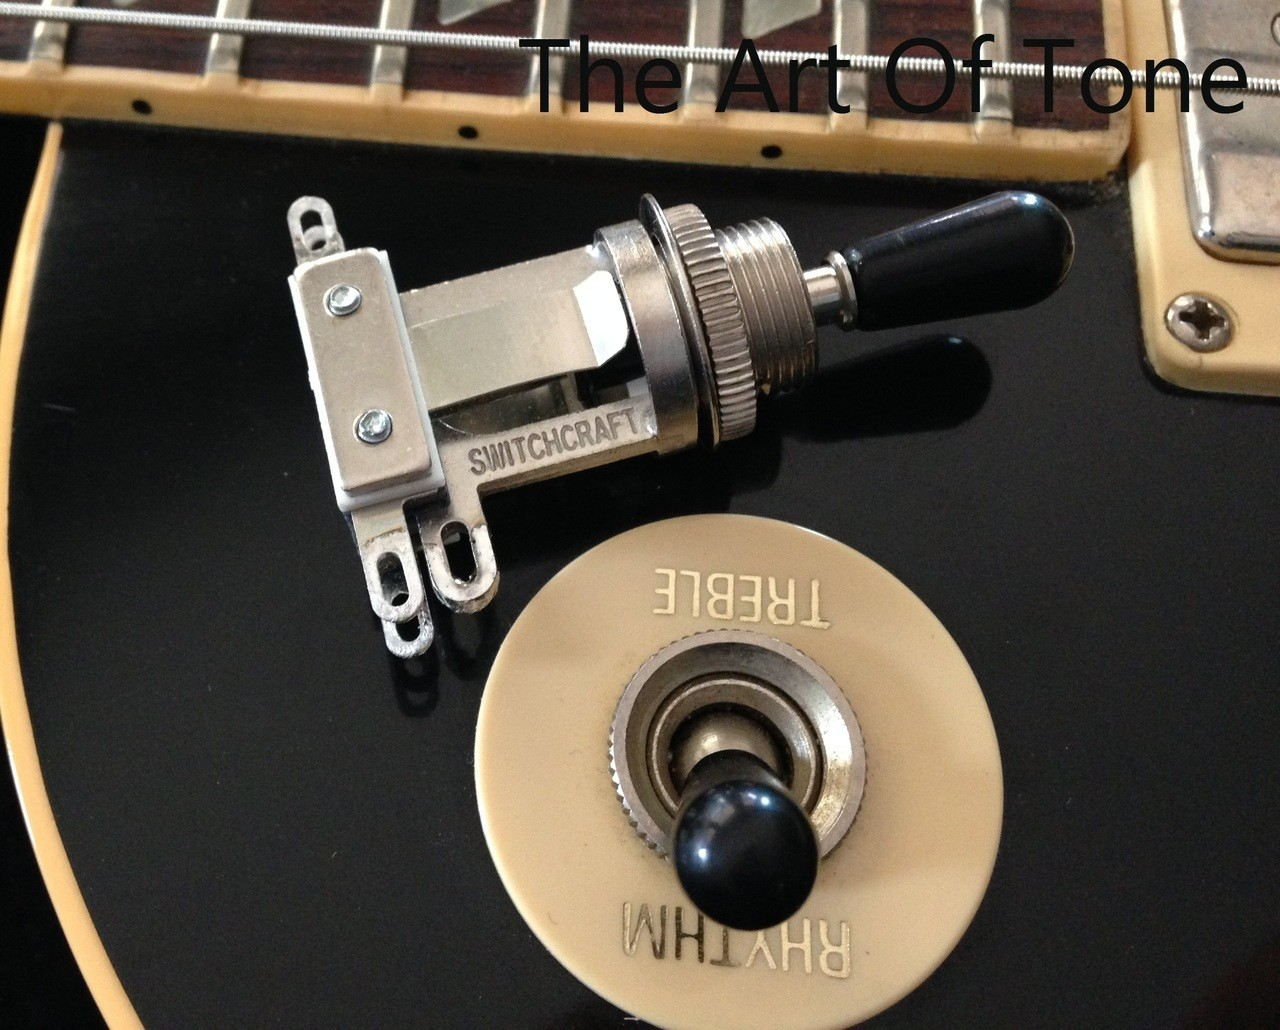 Switchcraft Short Frame Toggle Black Switch Tip The Art Tone